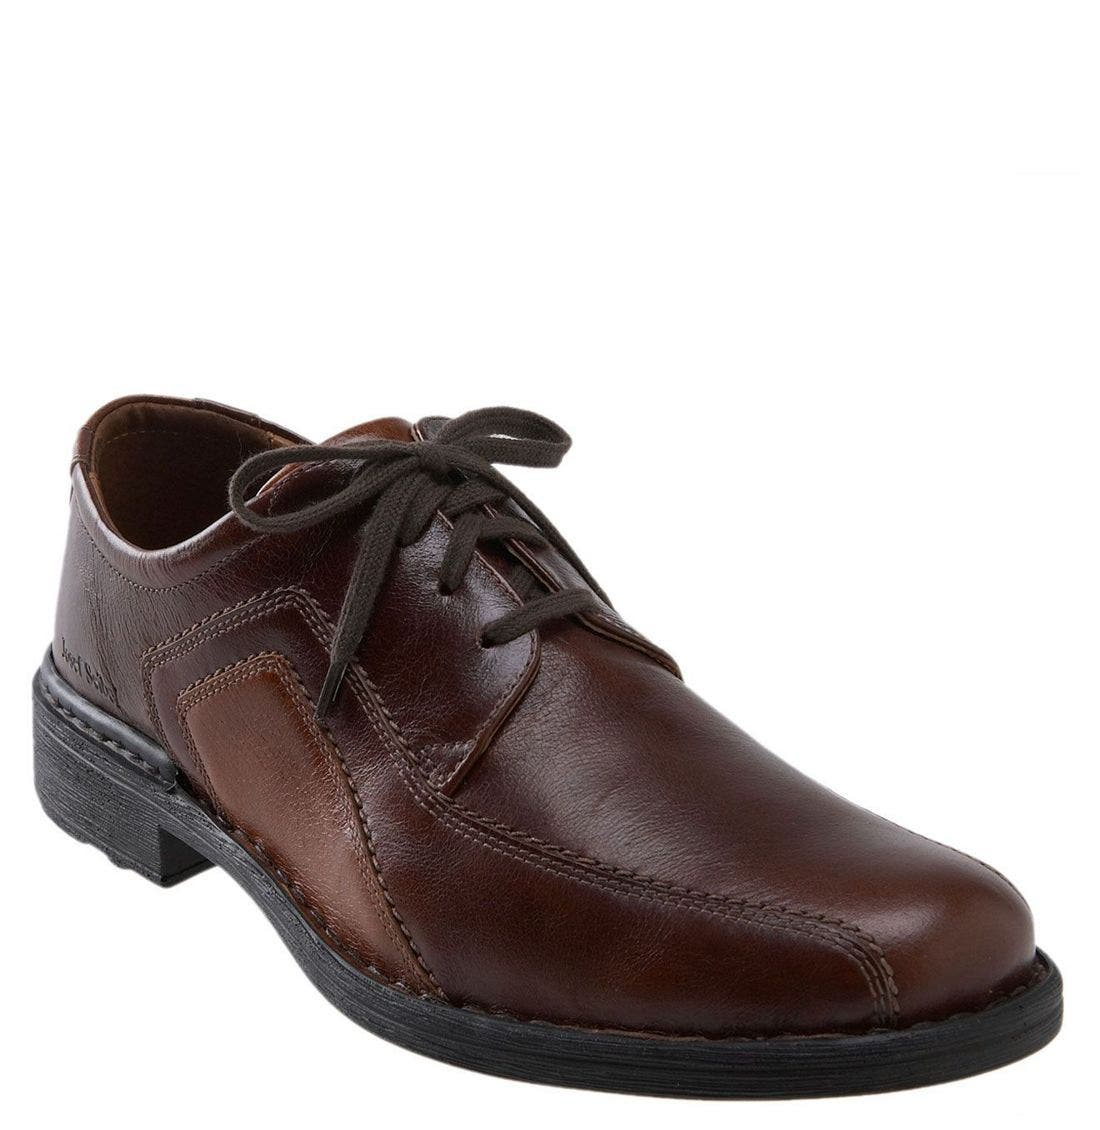 Josef Seibel 'Sander' Oxford